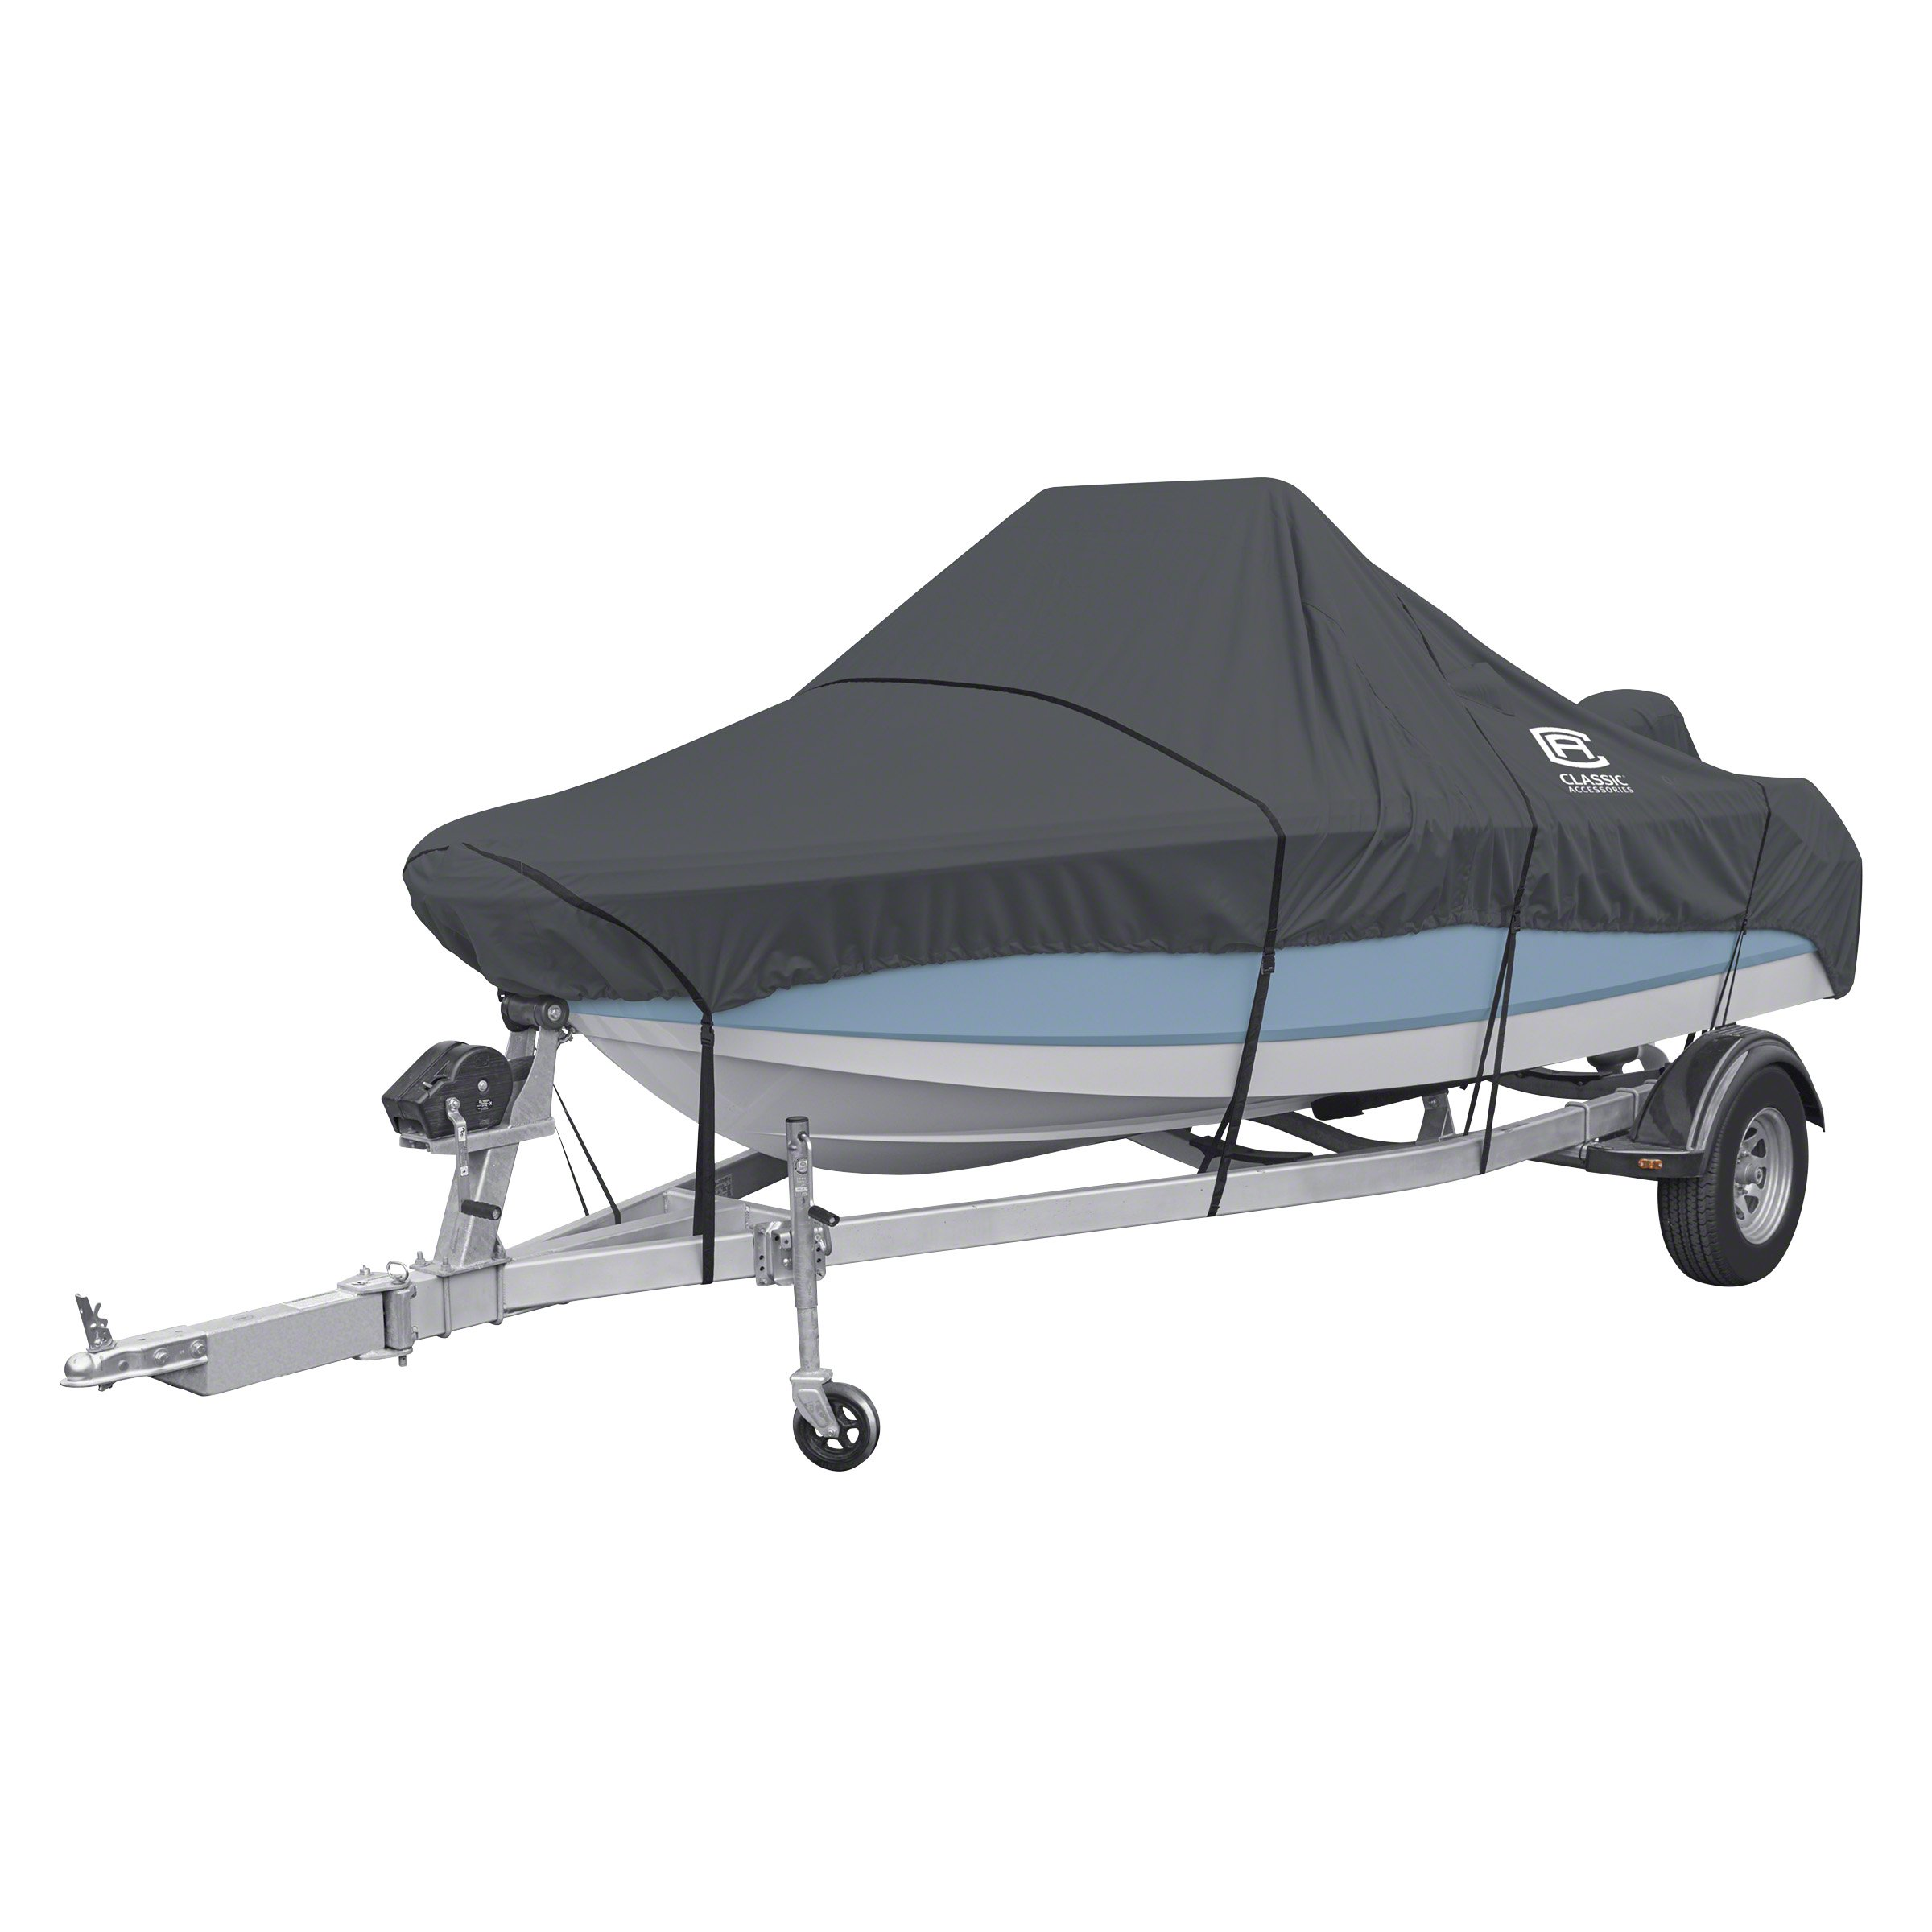 Classic Accessories StormPro Heavy Duty Center Console Boat Cover, For 20'-22' Long, Up to 106'' Beam Width by Classic Accessories